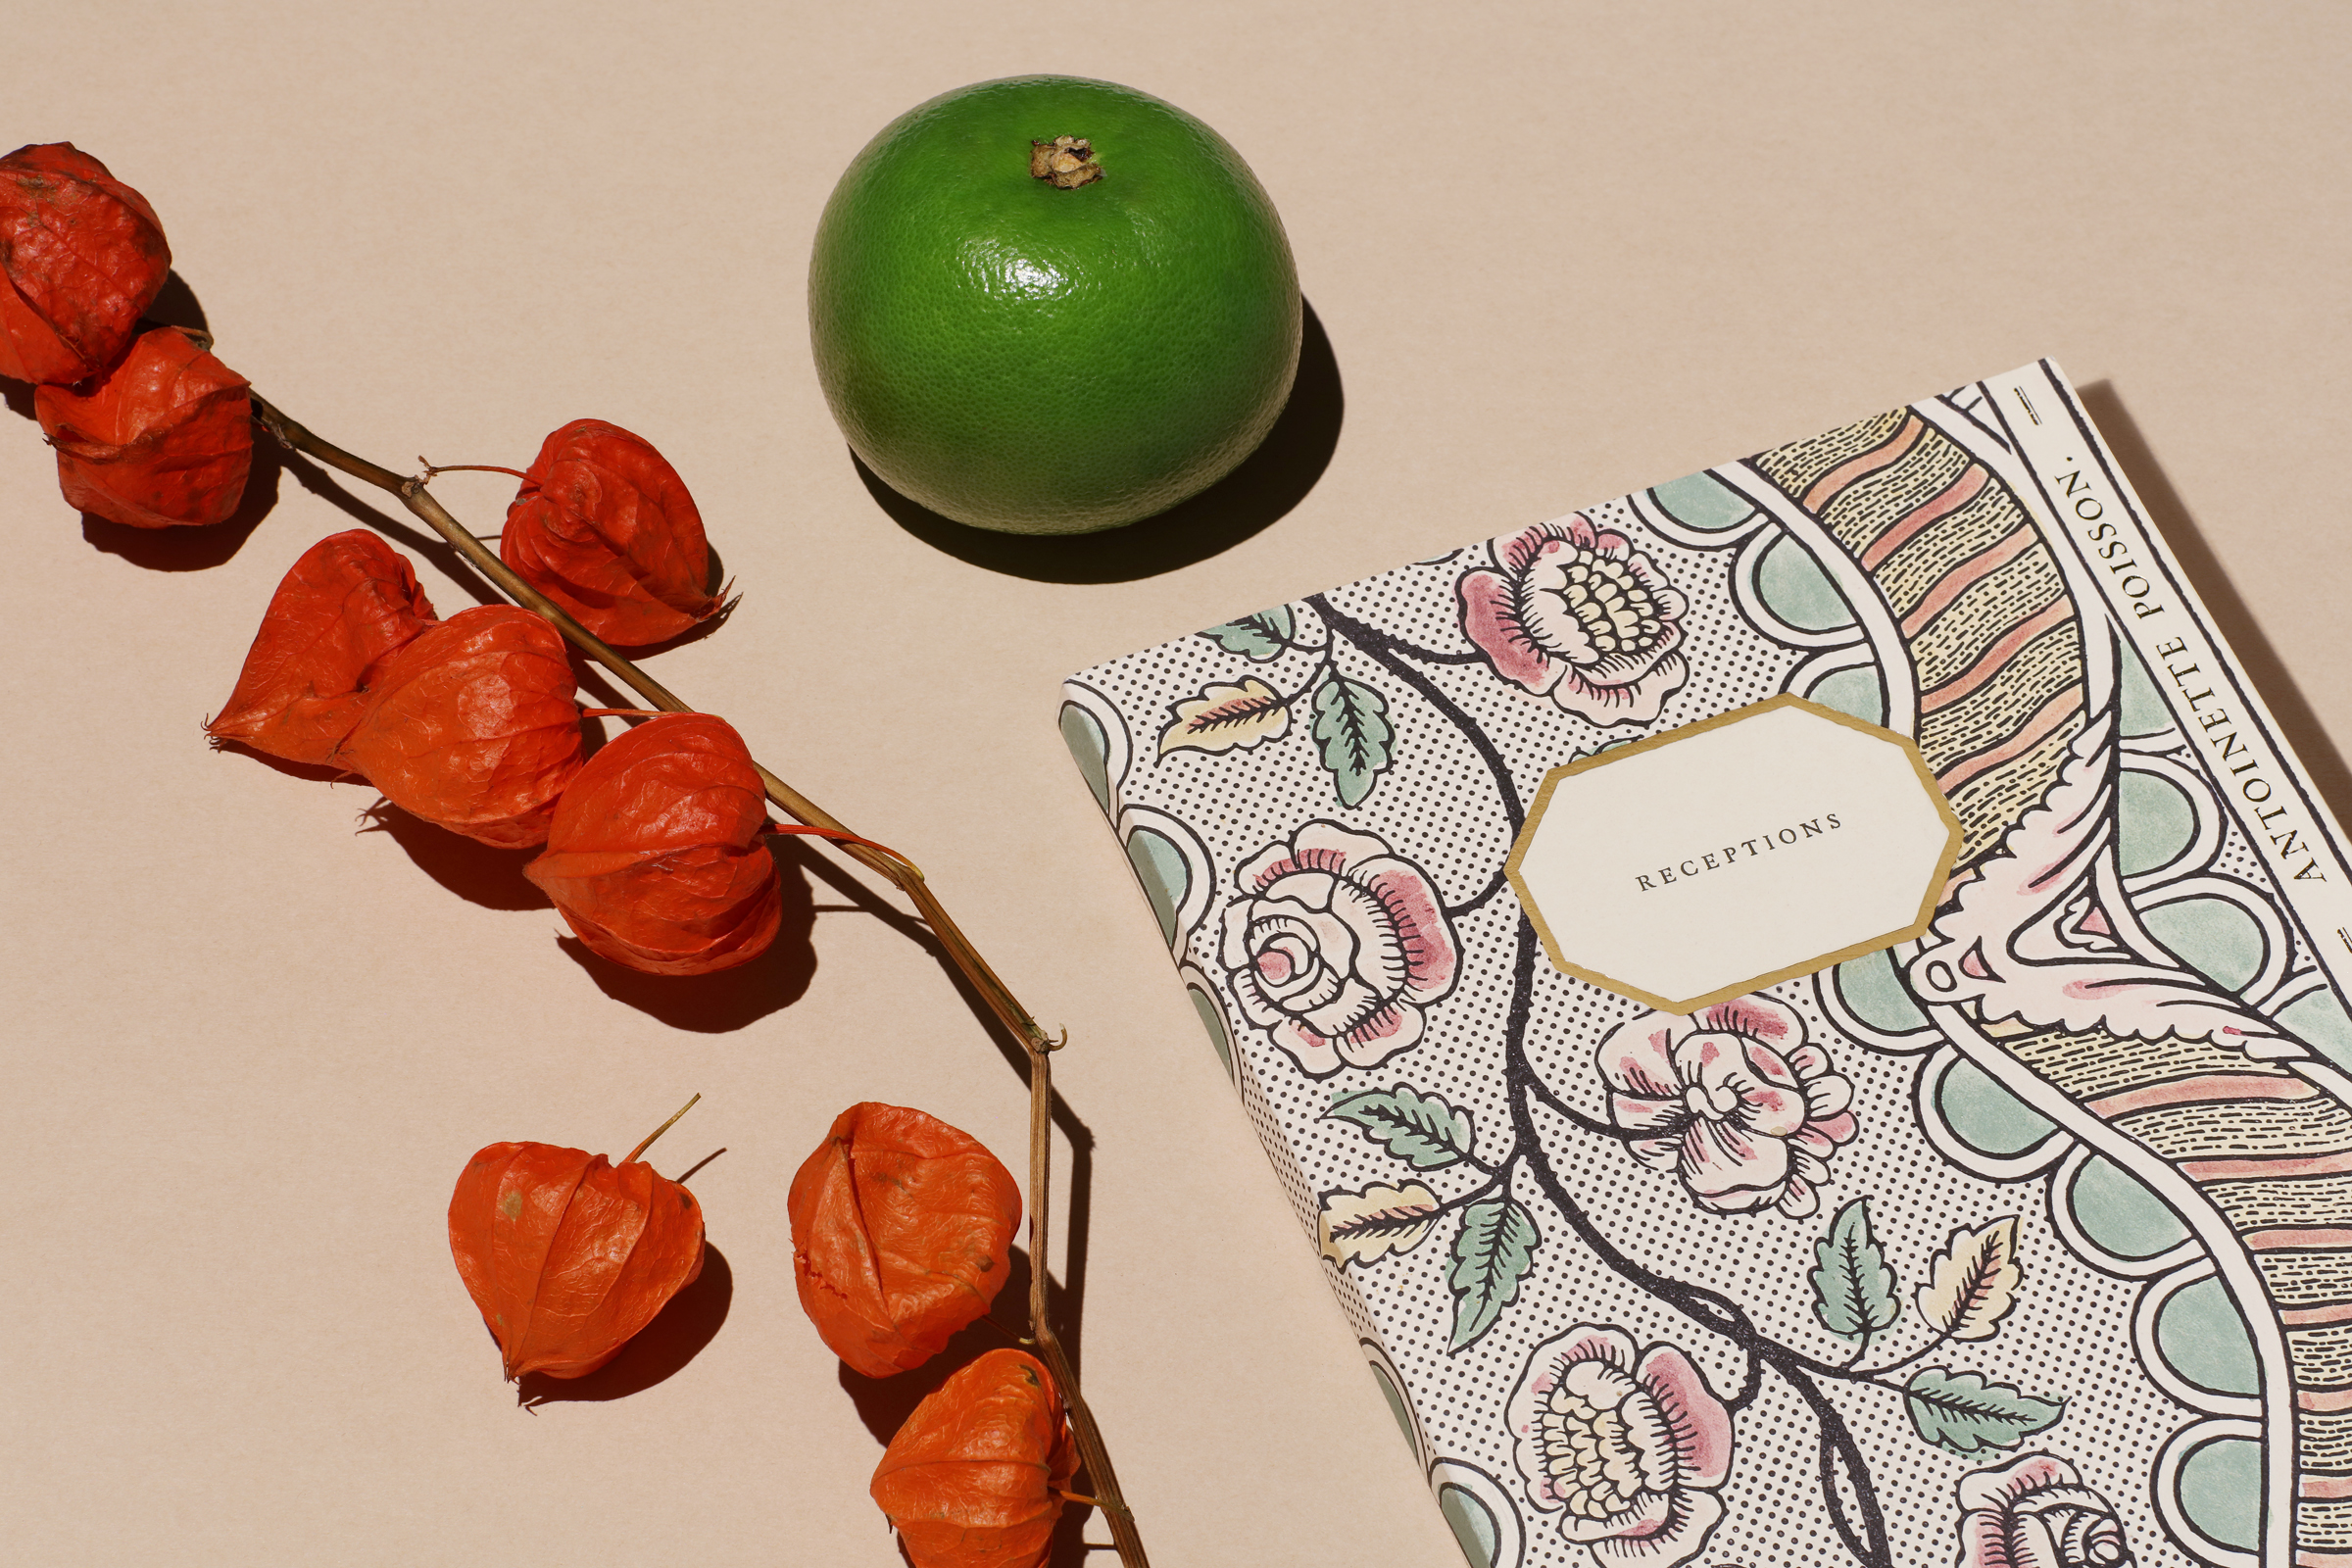 Roberto Badin Le Bon Marché_Holiday_Thomas Treuhaft_Still Life_Product_Photography 1